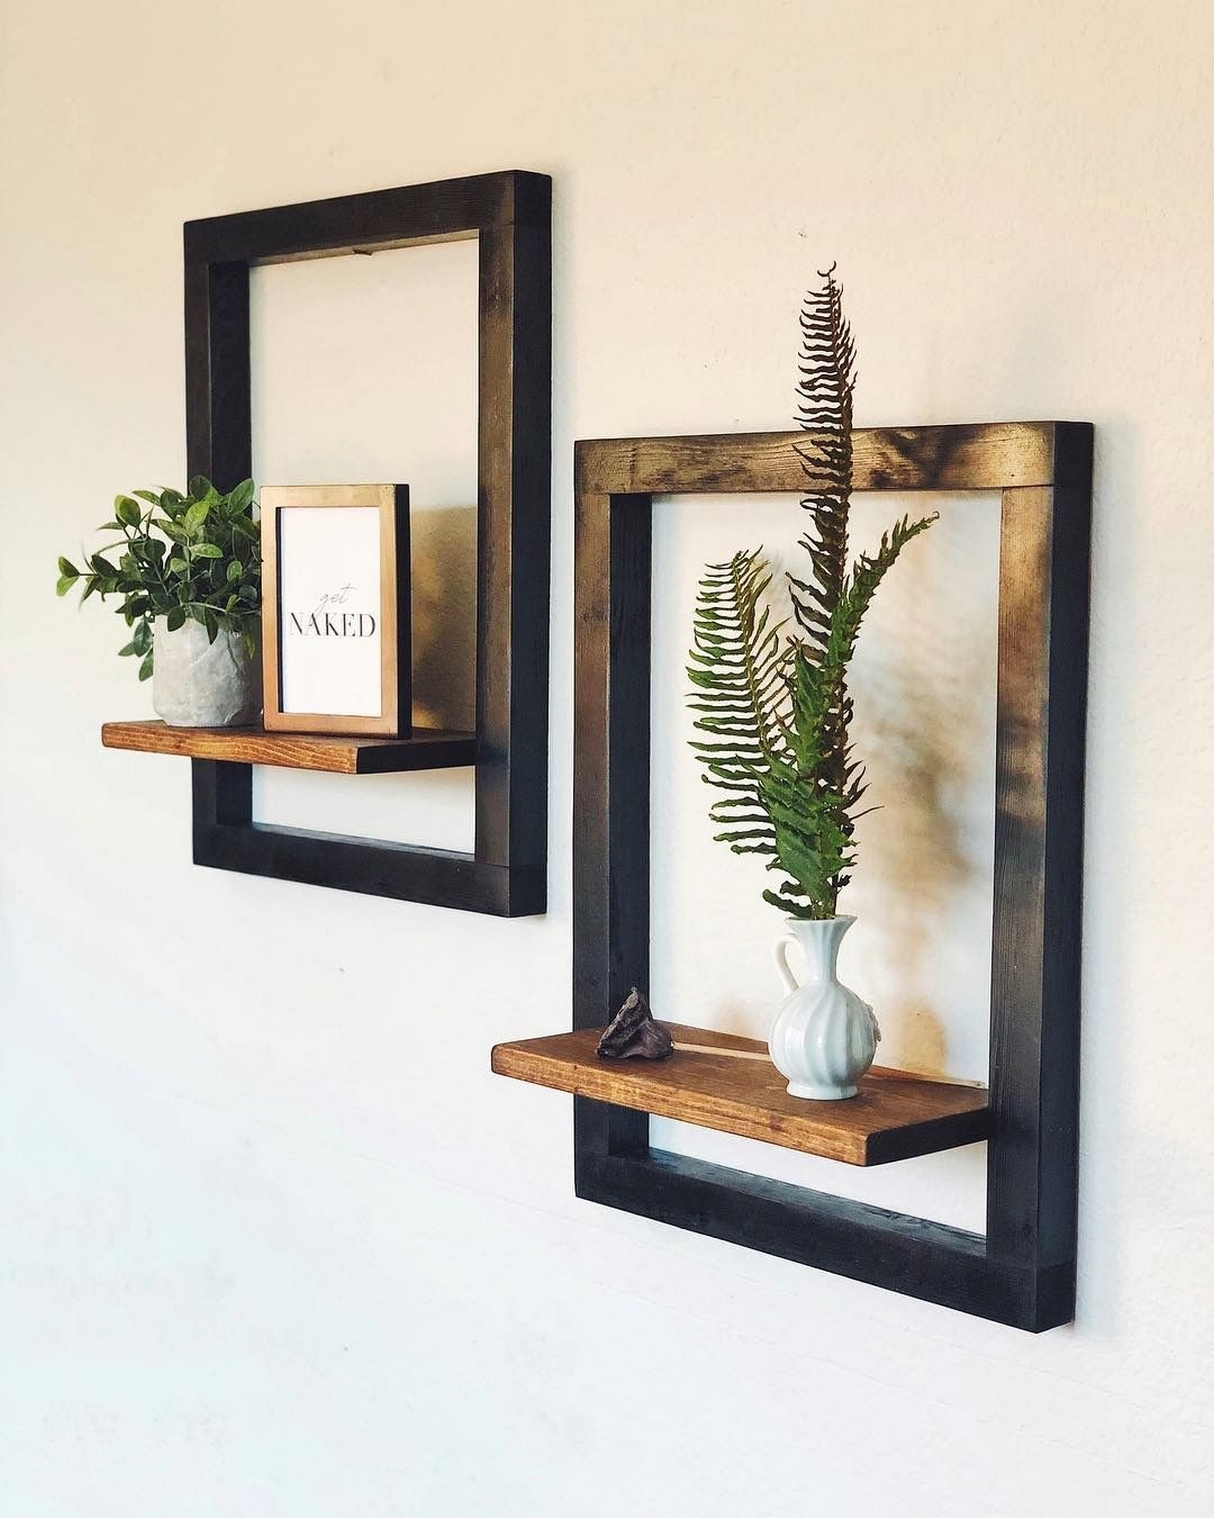 ✔️ 20+ Top Choices Wood Wall Shelf Style And Convenience 19